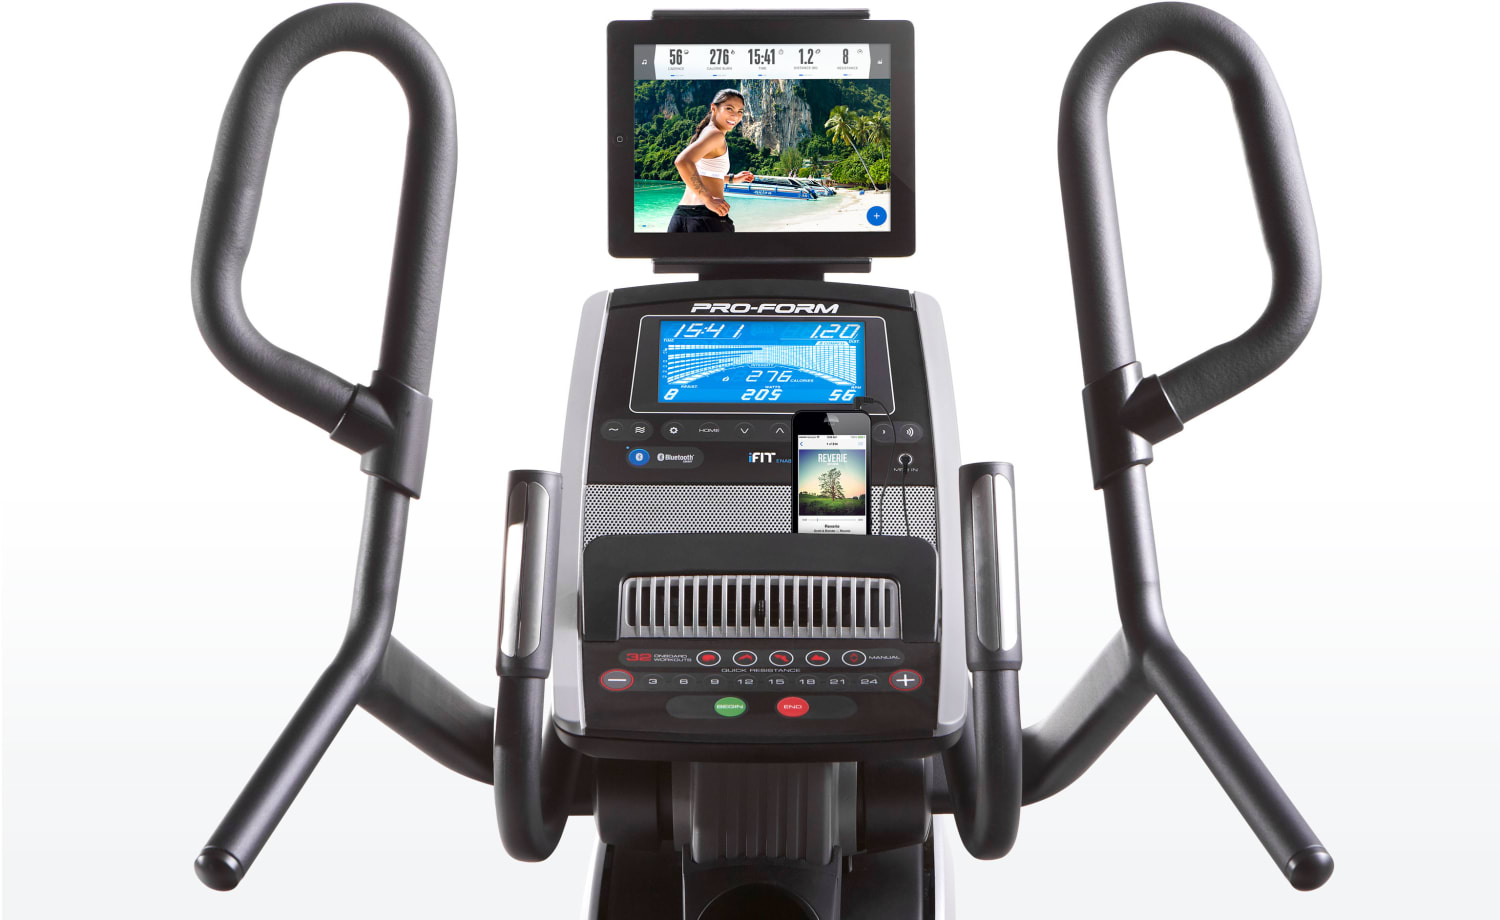 HIIT trainer console